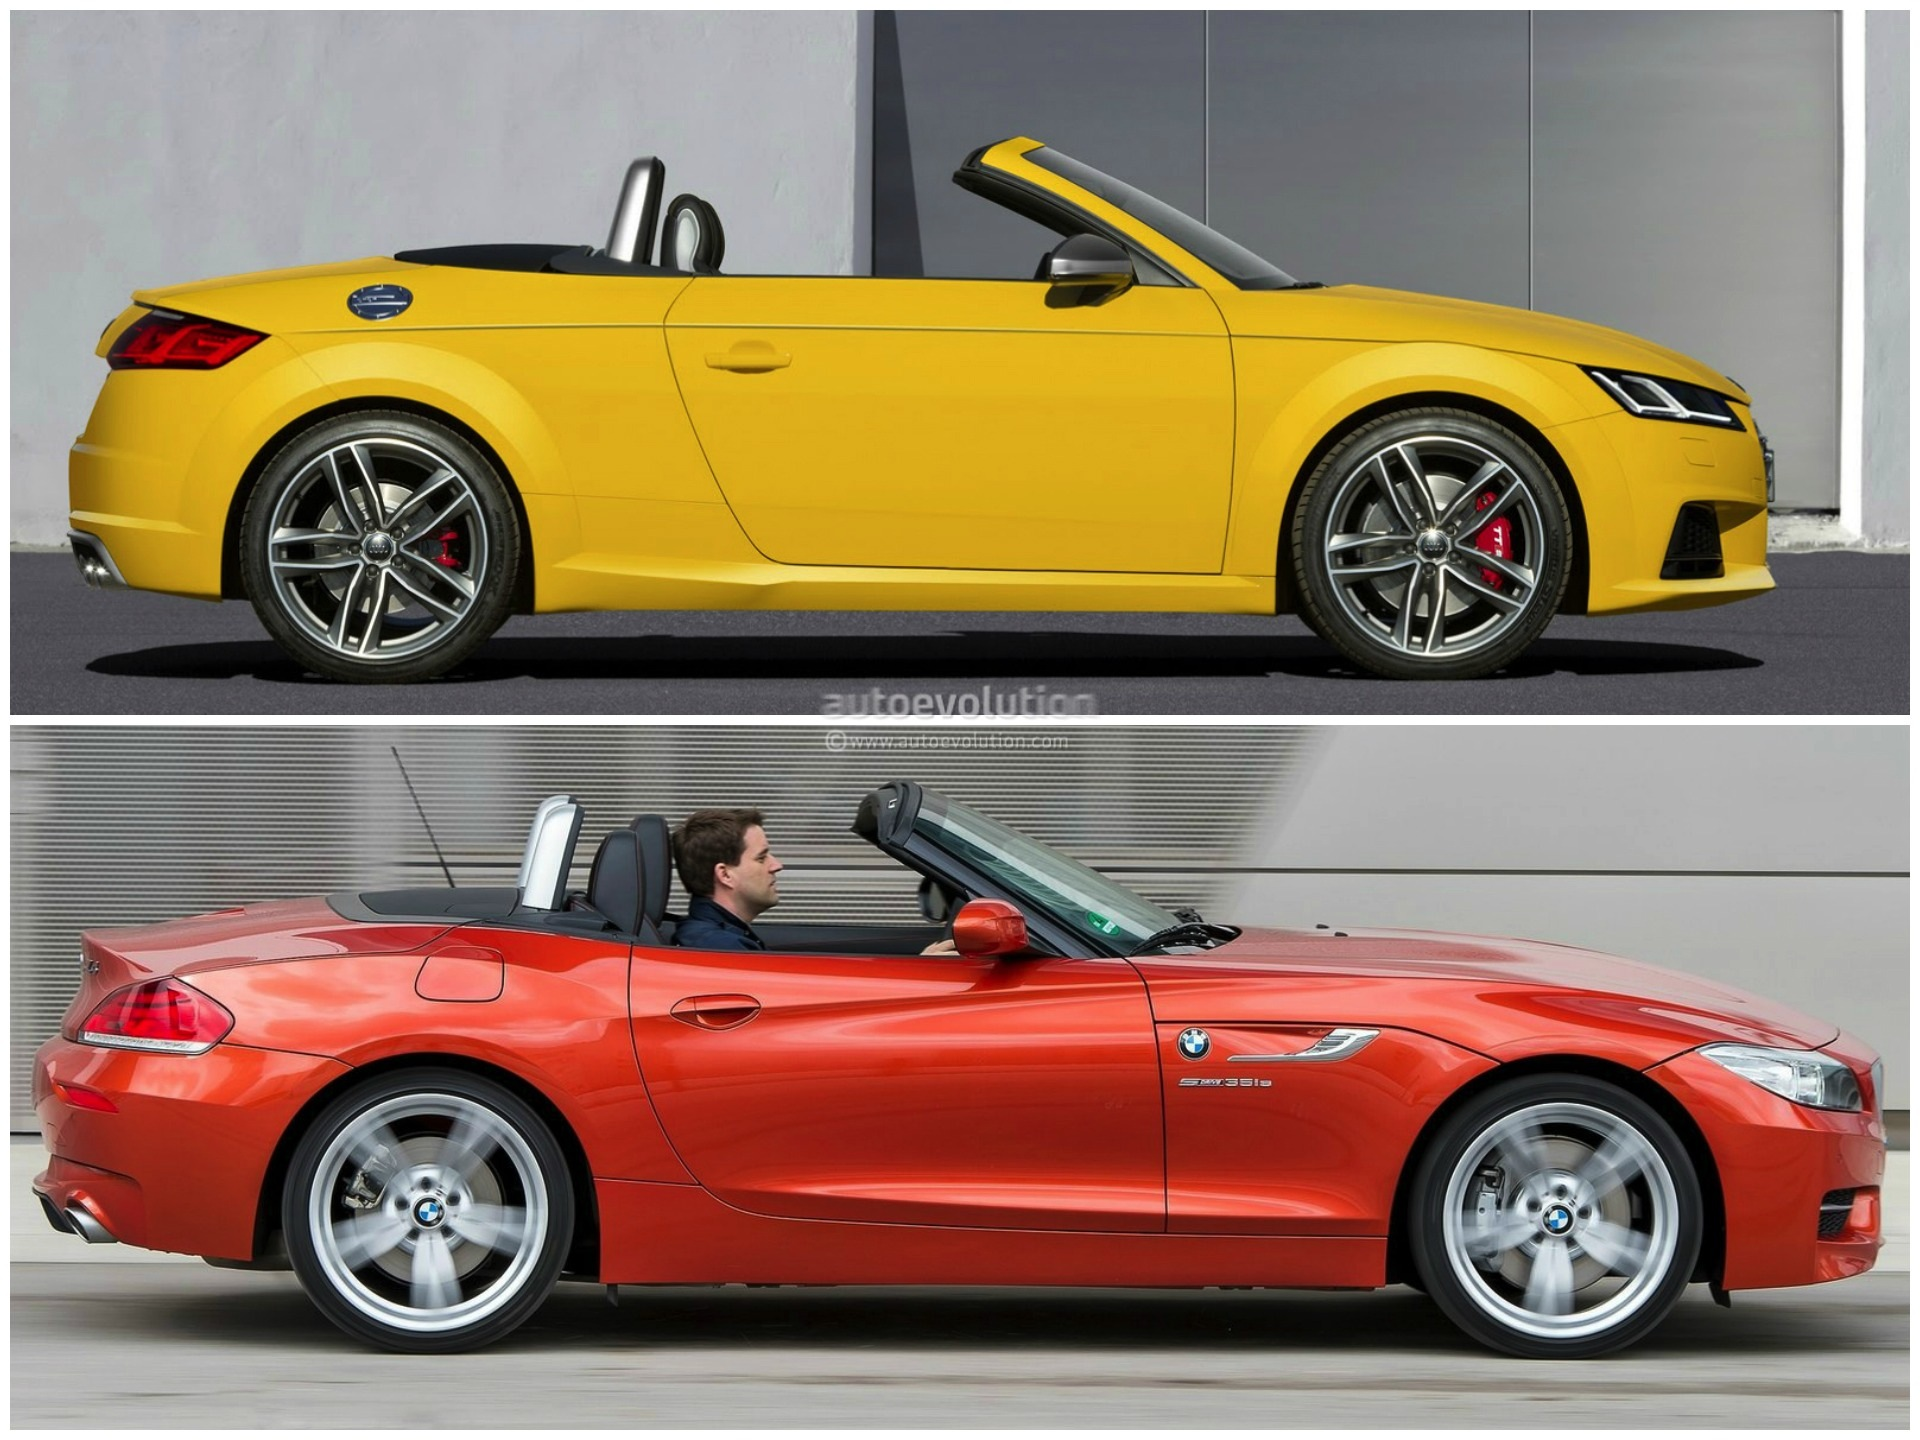 2015 Audi Tt Roadster Vs 2014 Bmw Z4 Roadster Comparison